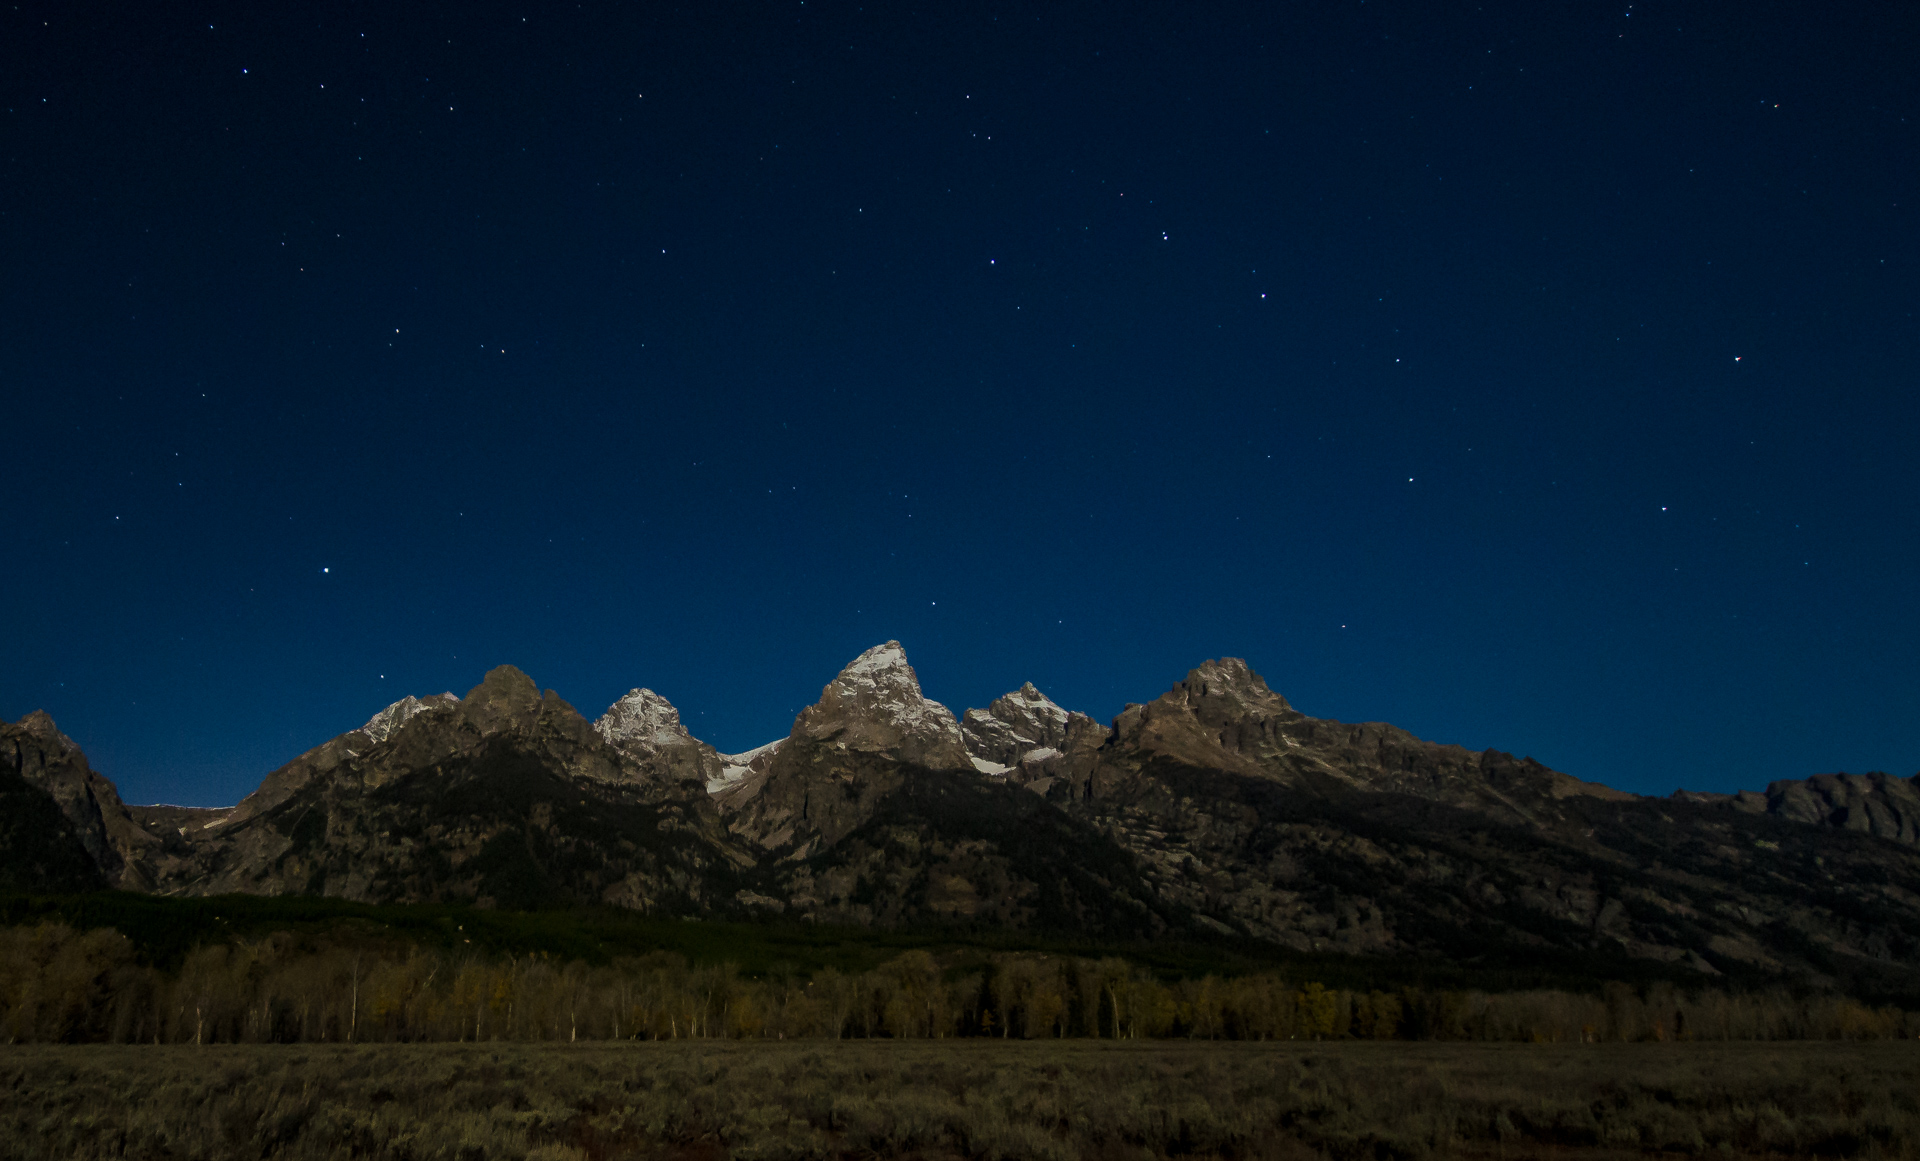 Tetons by Moonlight - Digital (Night) - Name Withheld Per Request